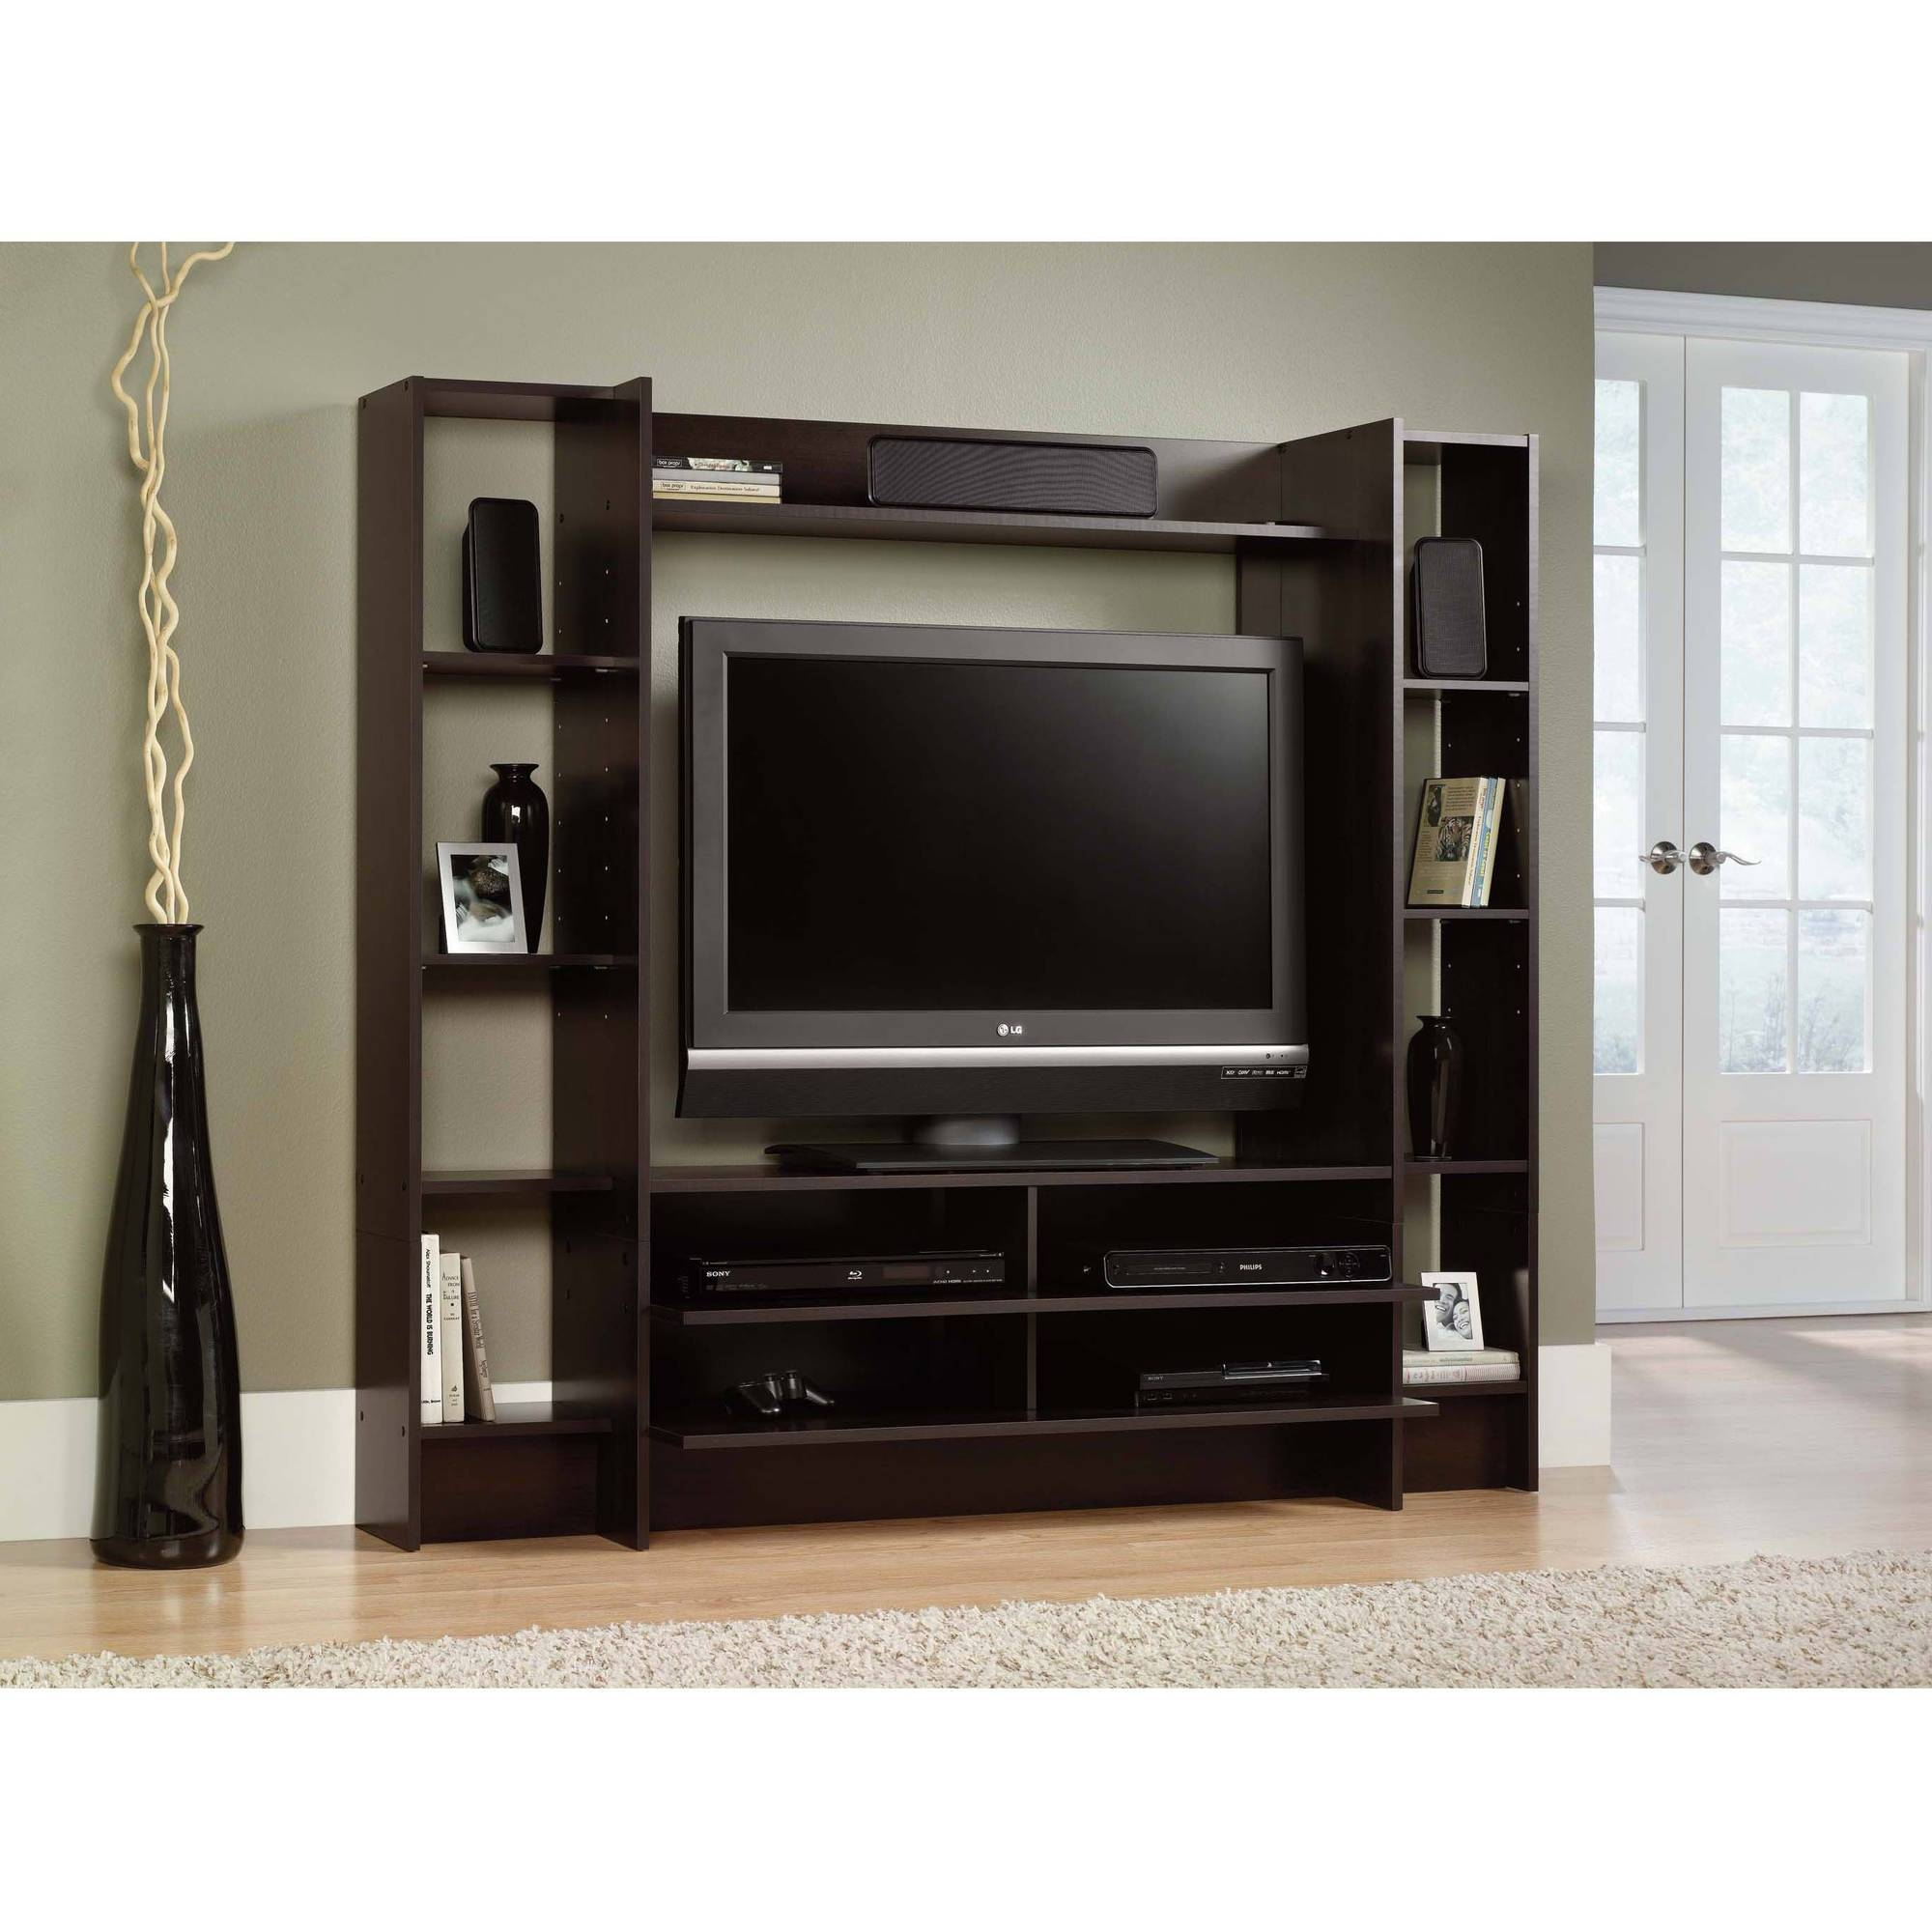 Wall Units: Awesome Tv Wall Entertainment Unit Walmart throughout Tv Entertainment Unit (Image 14 of 15)